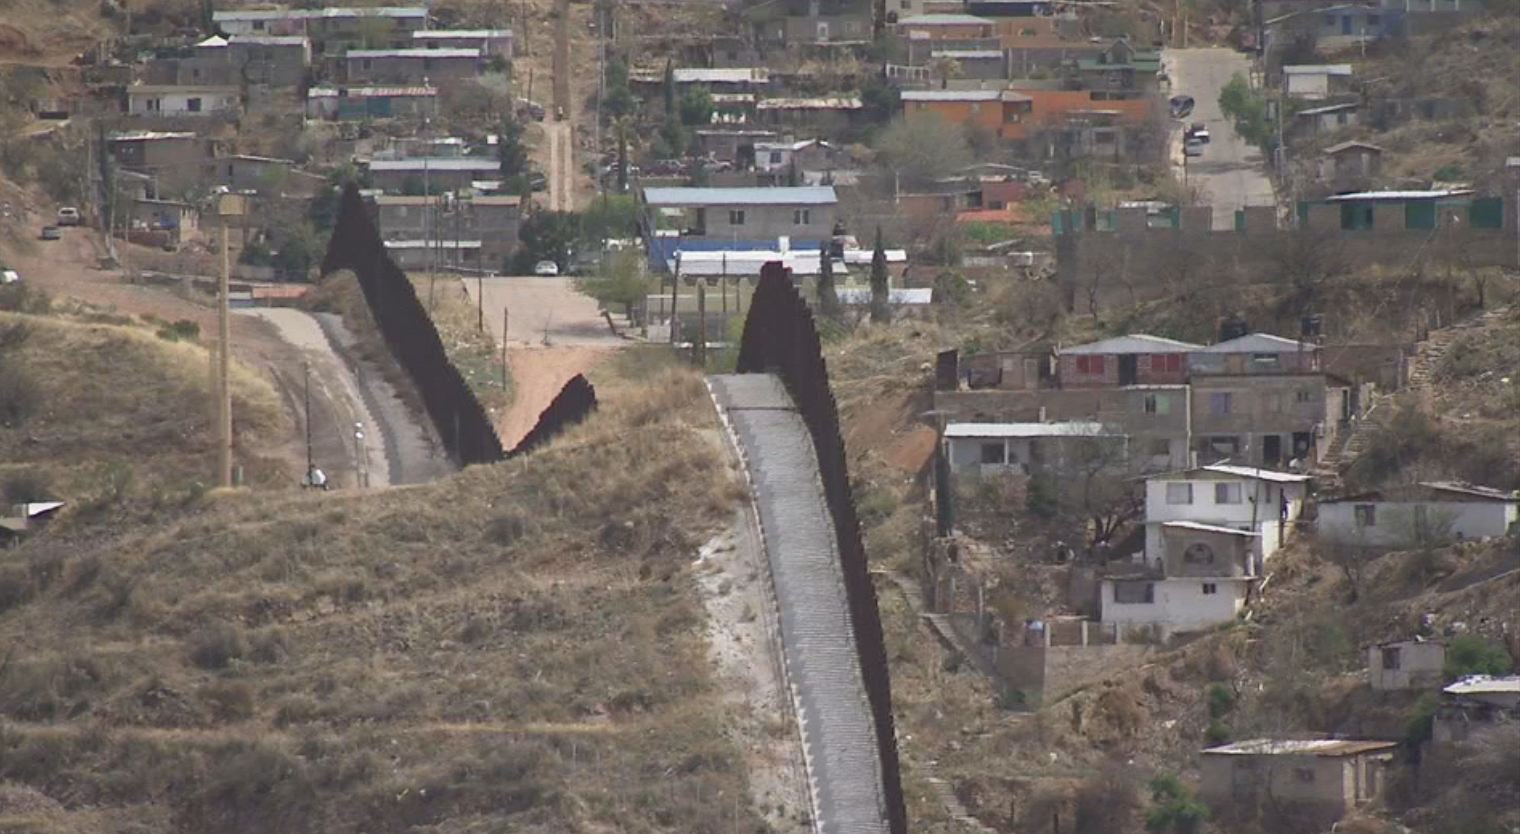 Arizona benefits from border security spending wmbfnews com myrtle